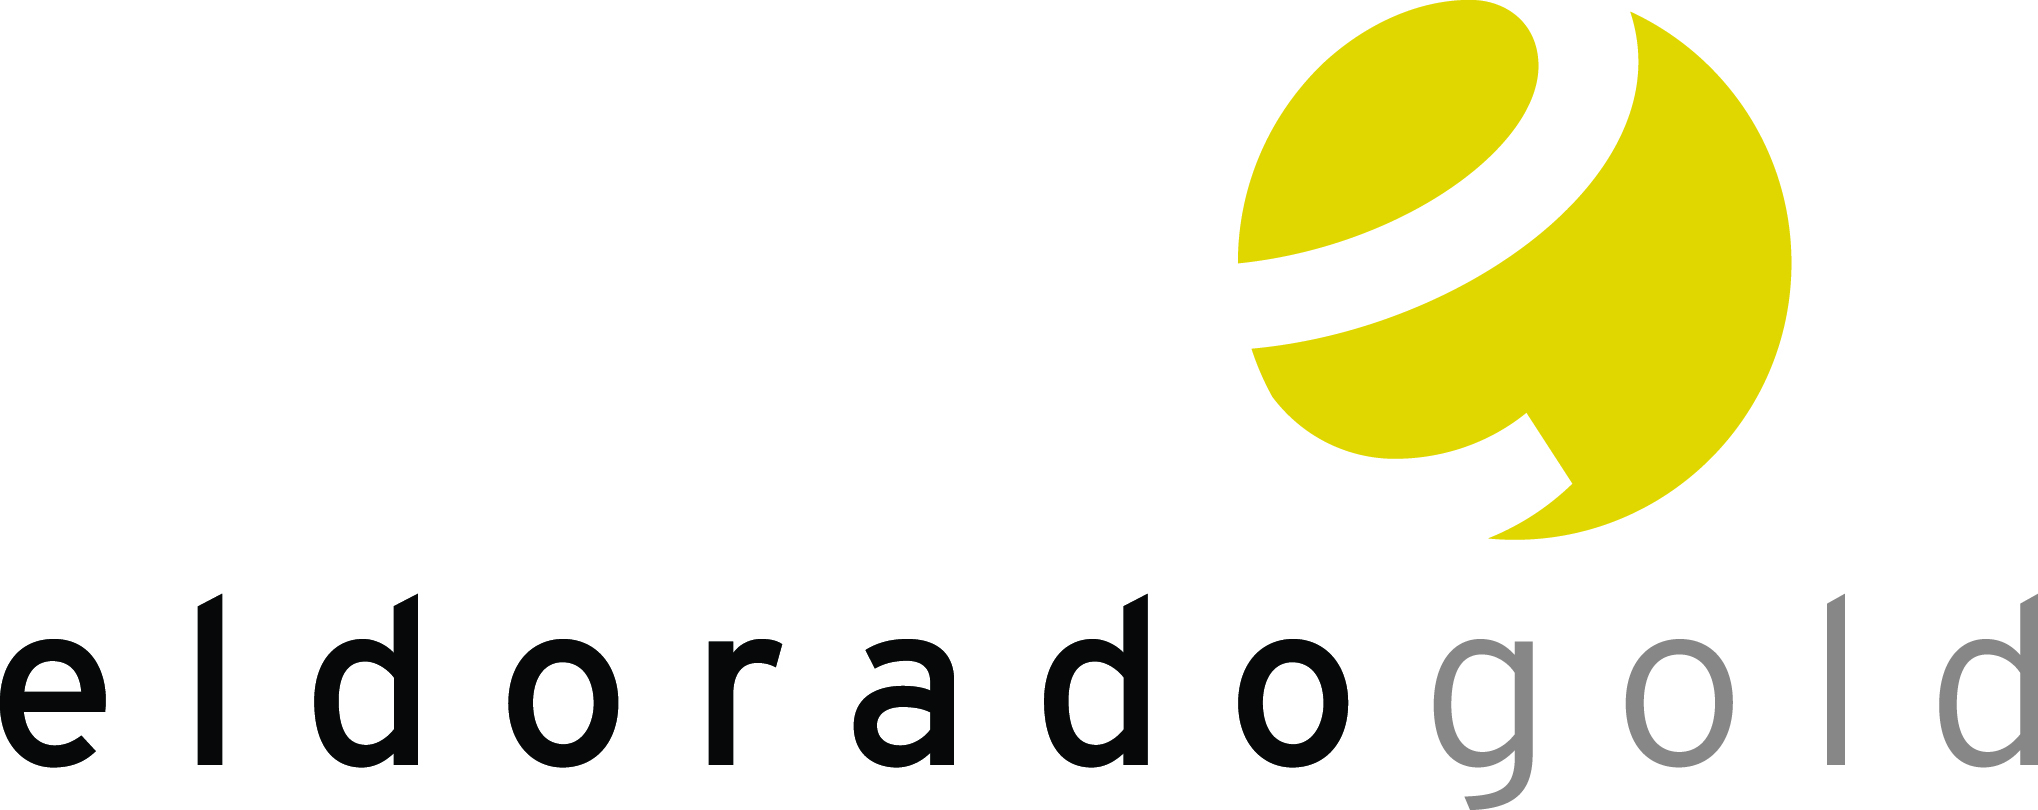 Eldorado Gold Announces Q3 2019 Financial and Operational Results Release Date and Conference Call